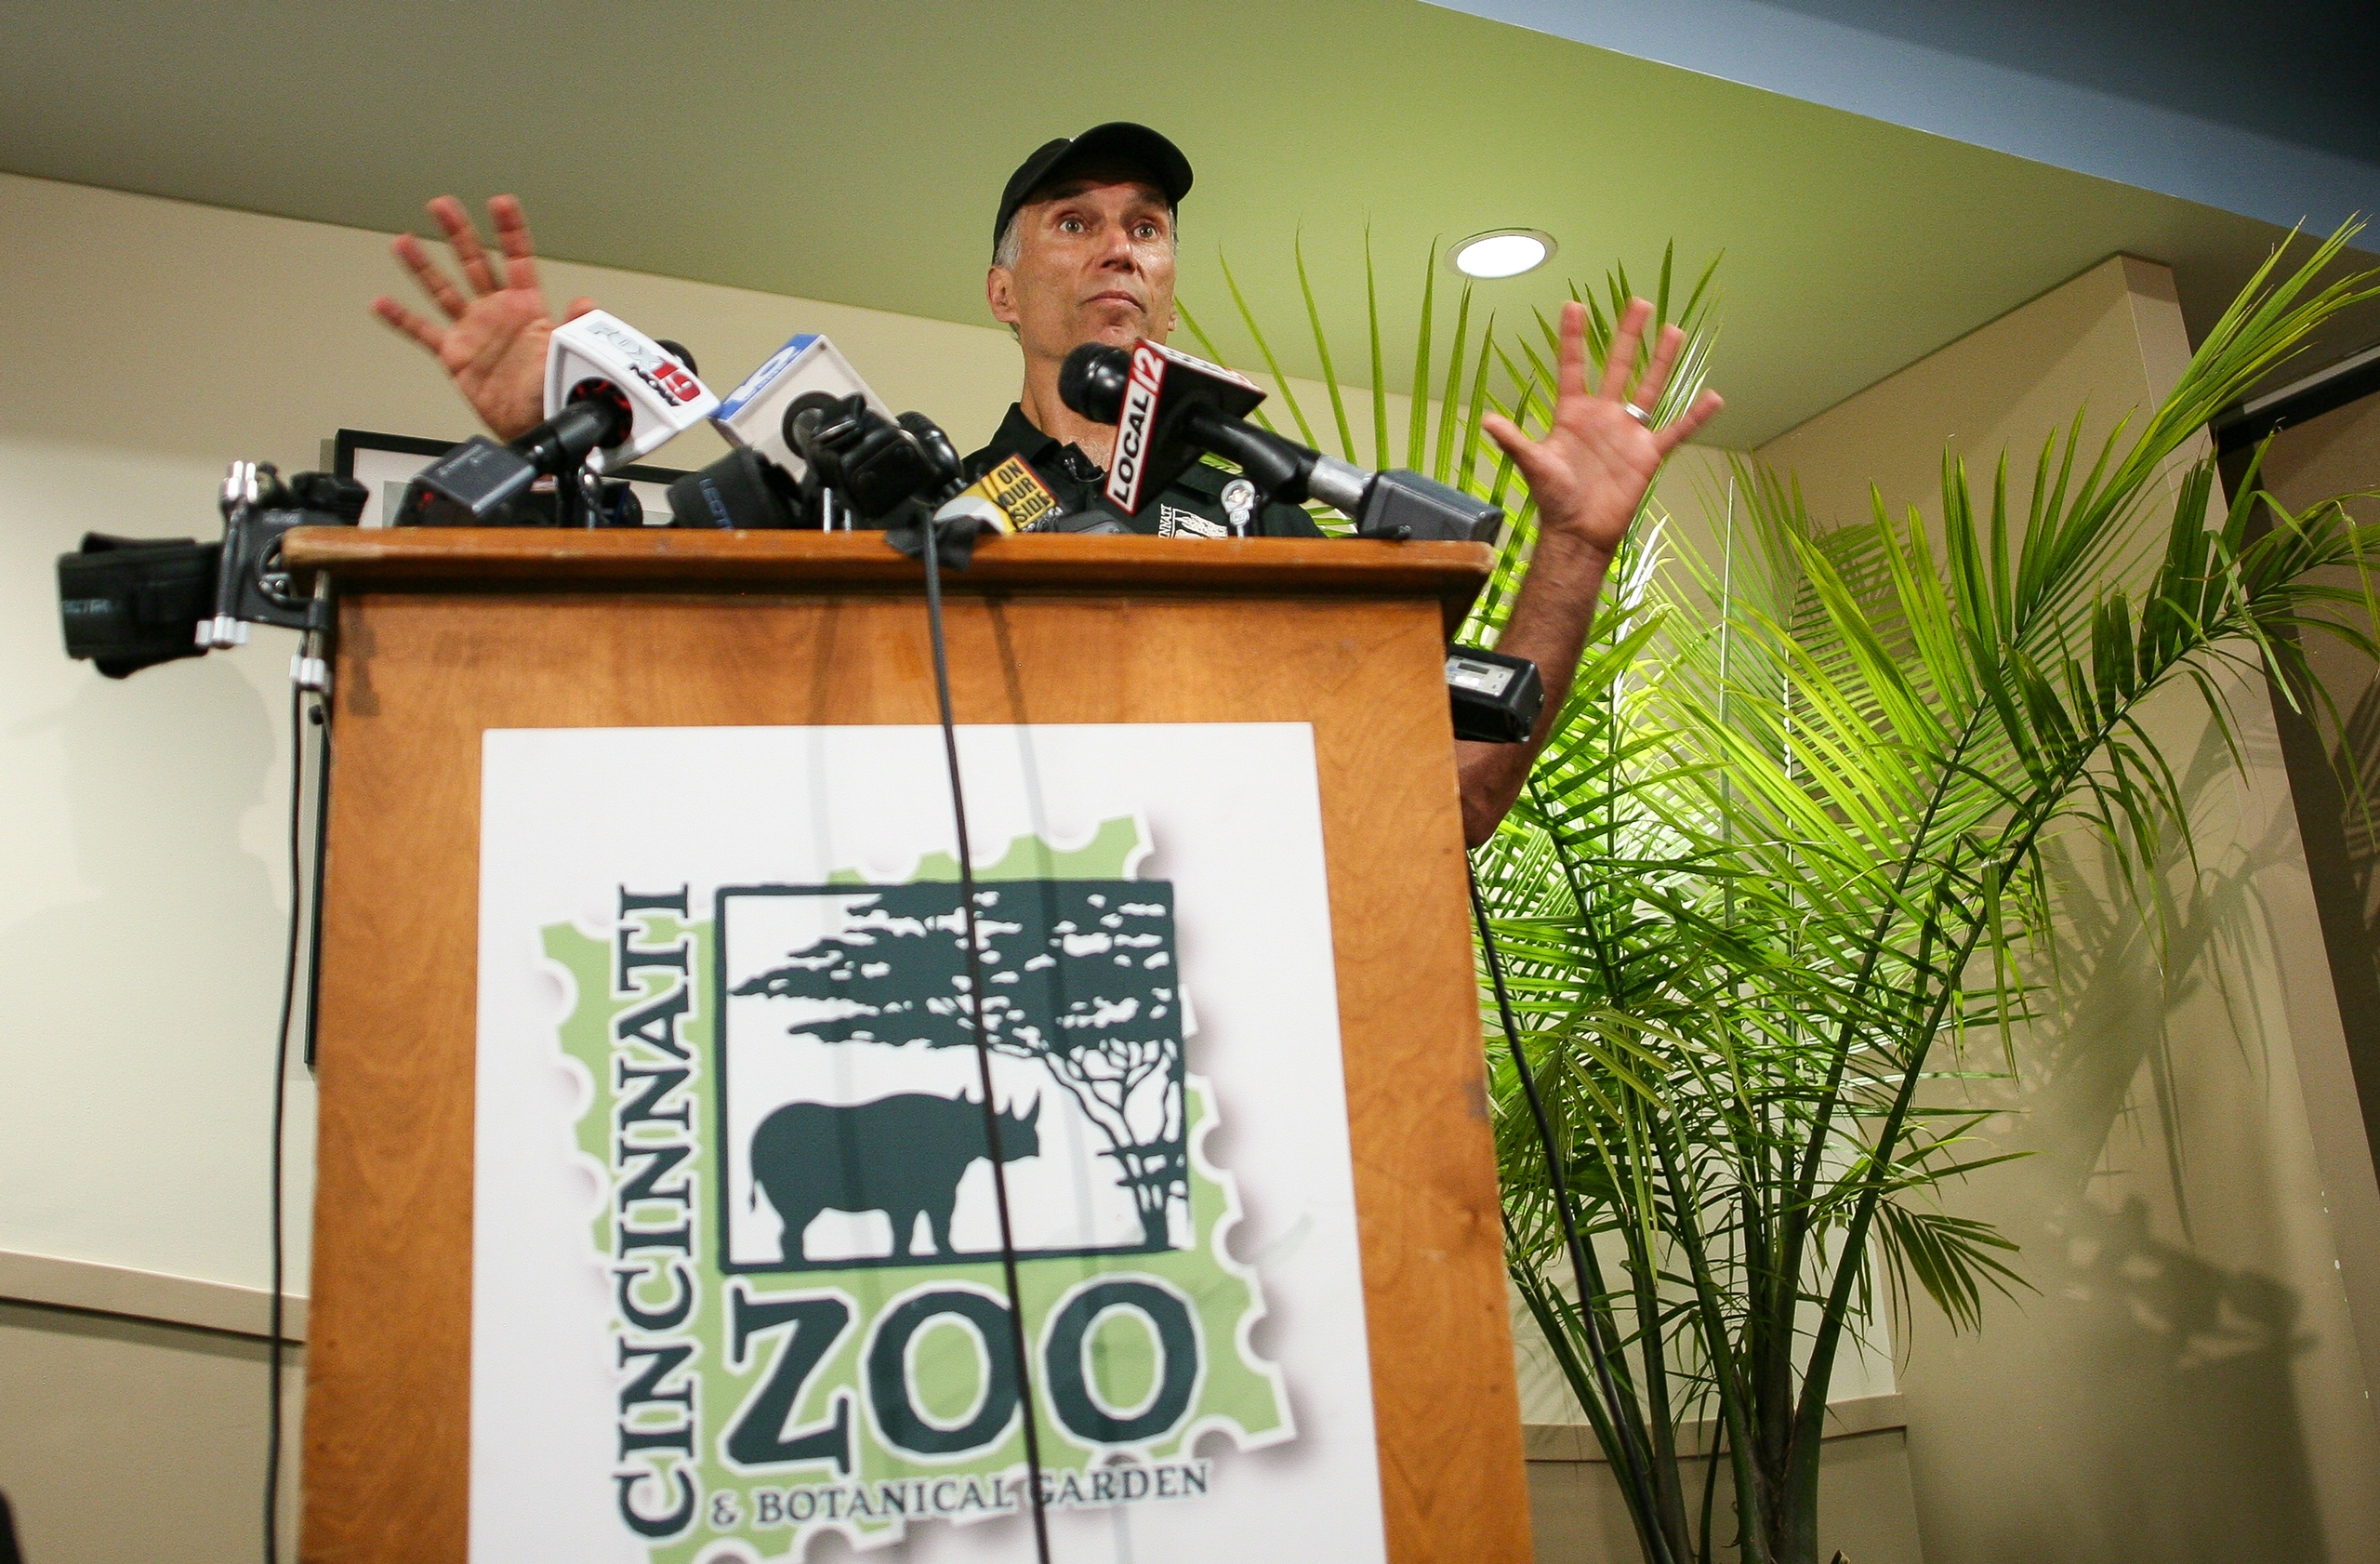 Thane Maynard, Executive Director of the Cincinnati Zoo and Botanical Gardens, speaks to reporters two days after a boy tumbled into a moat and officials were forced to kill Harambe, a Western lowland gorilla, in Cincinnati, Oh., on May 30, 2016.